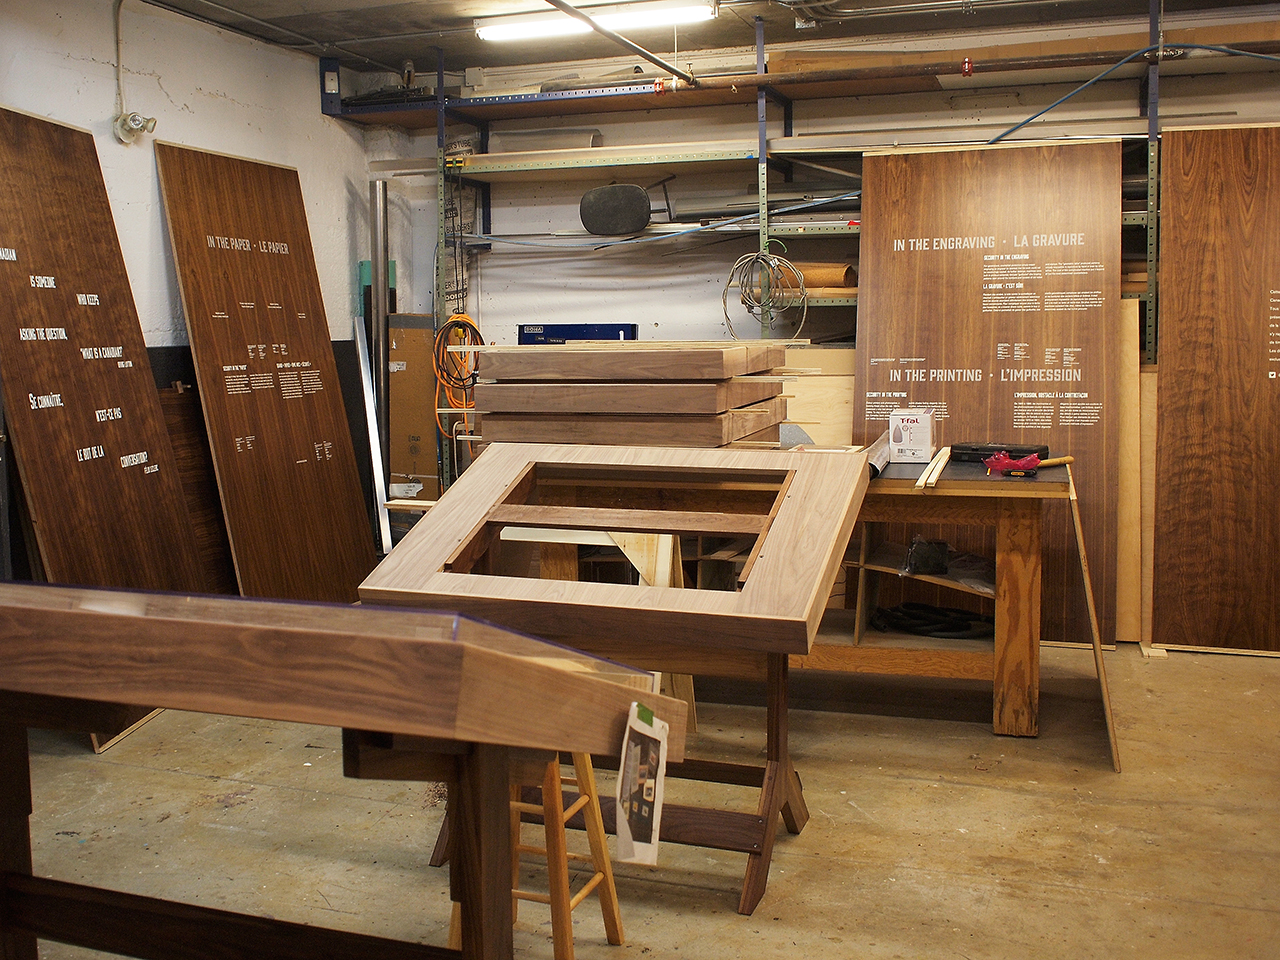 Workshop and wood panels